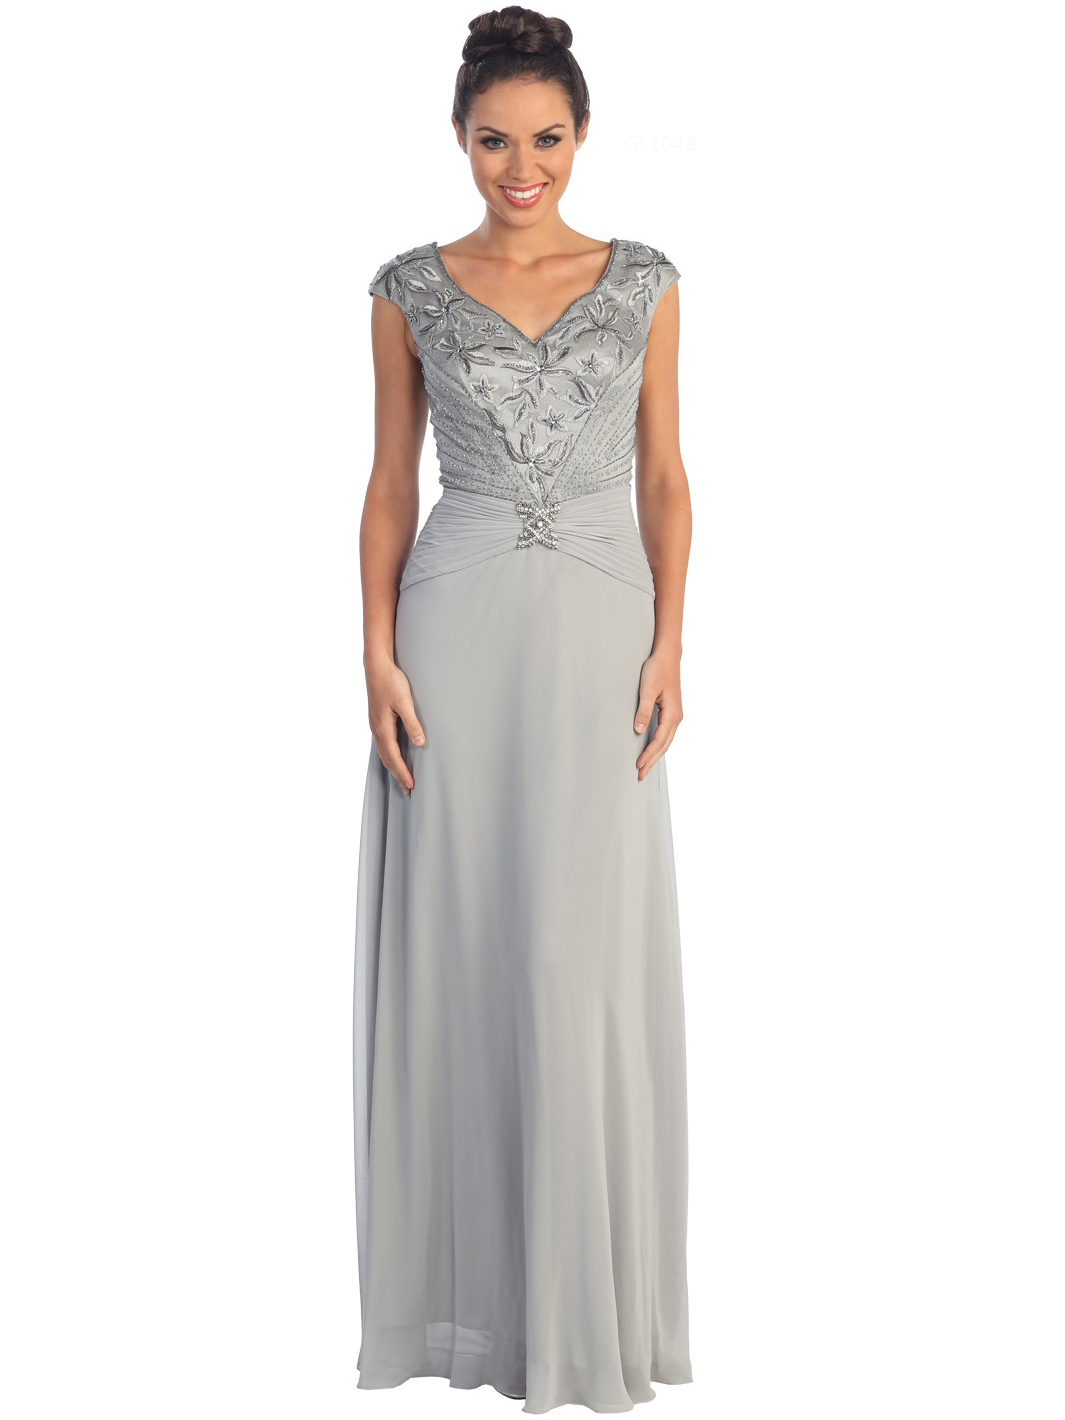 Slimming Mother Of The Bride Dresses - High Cut Wedding ...